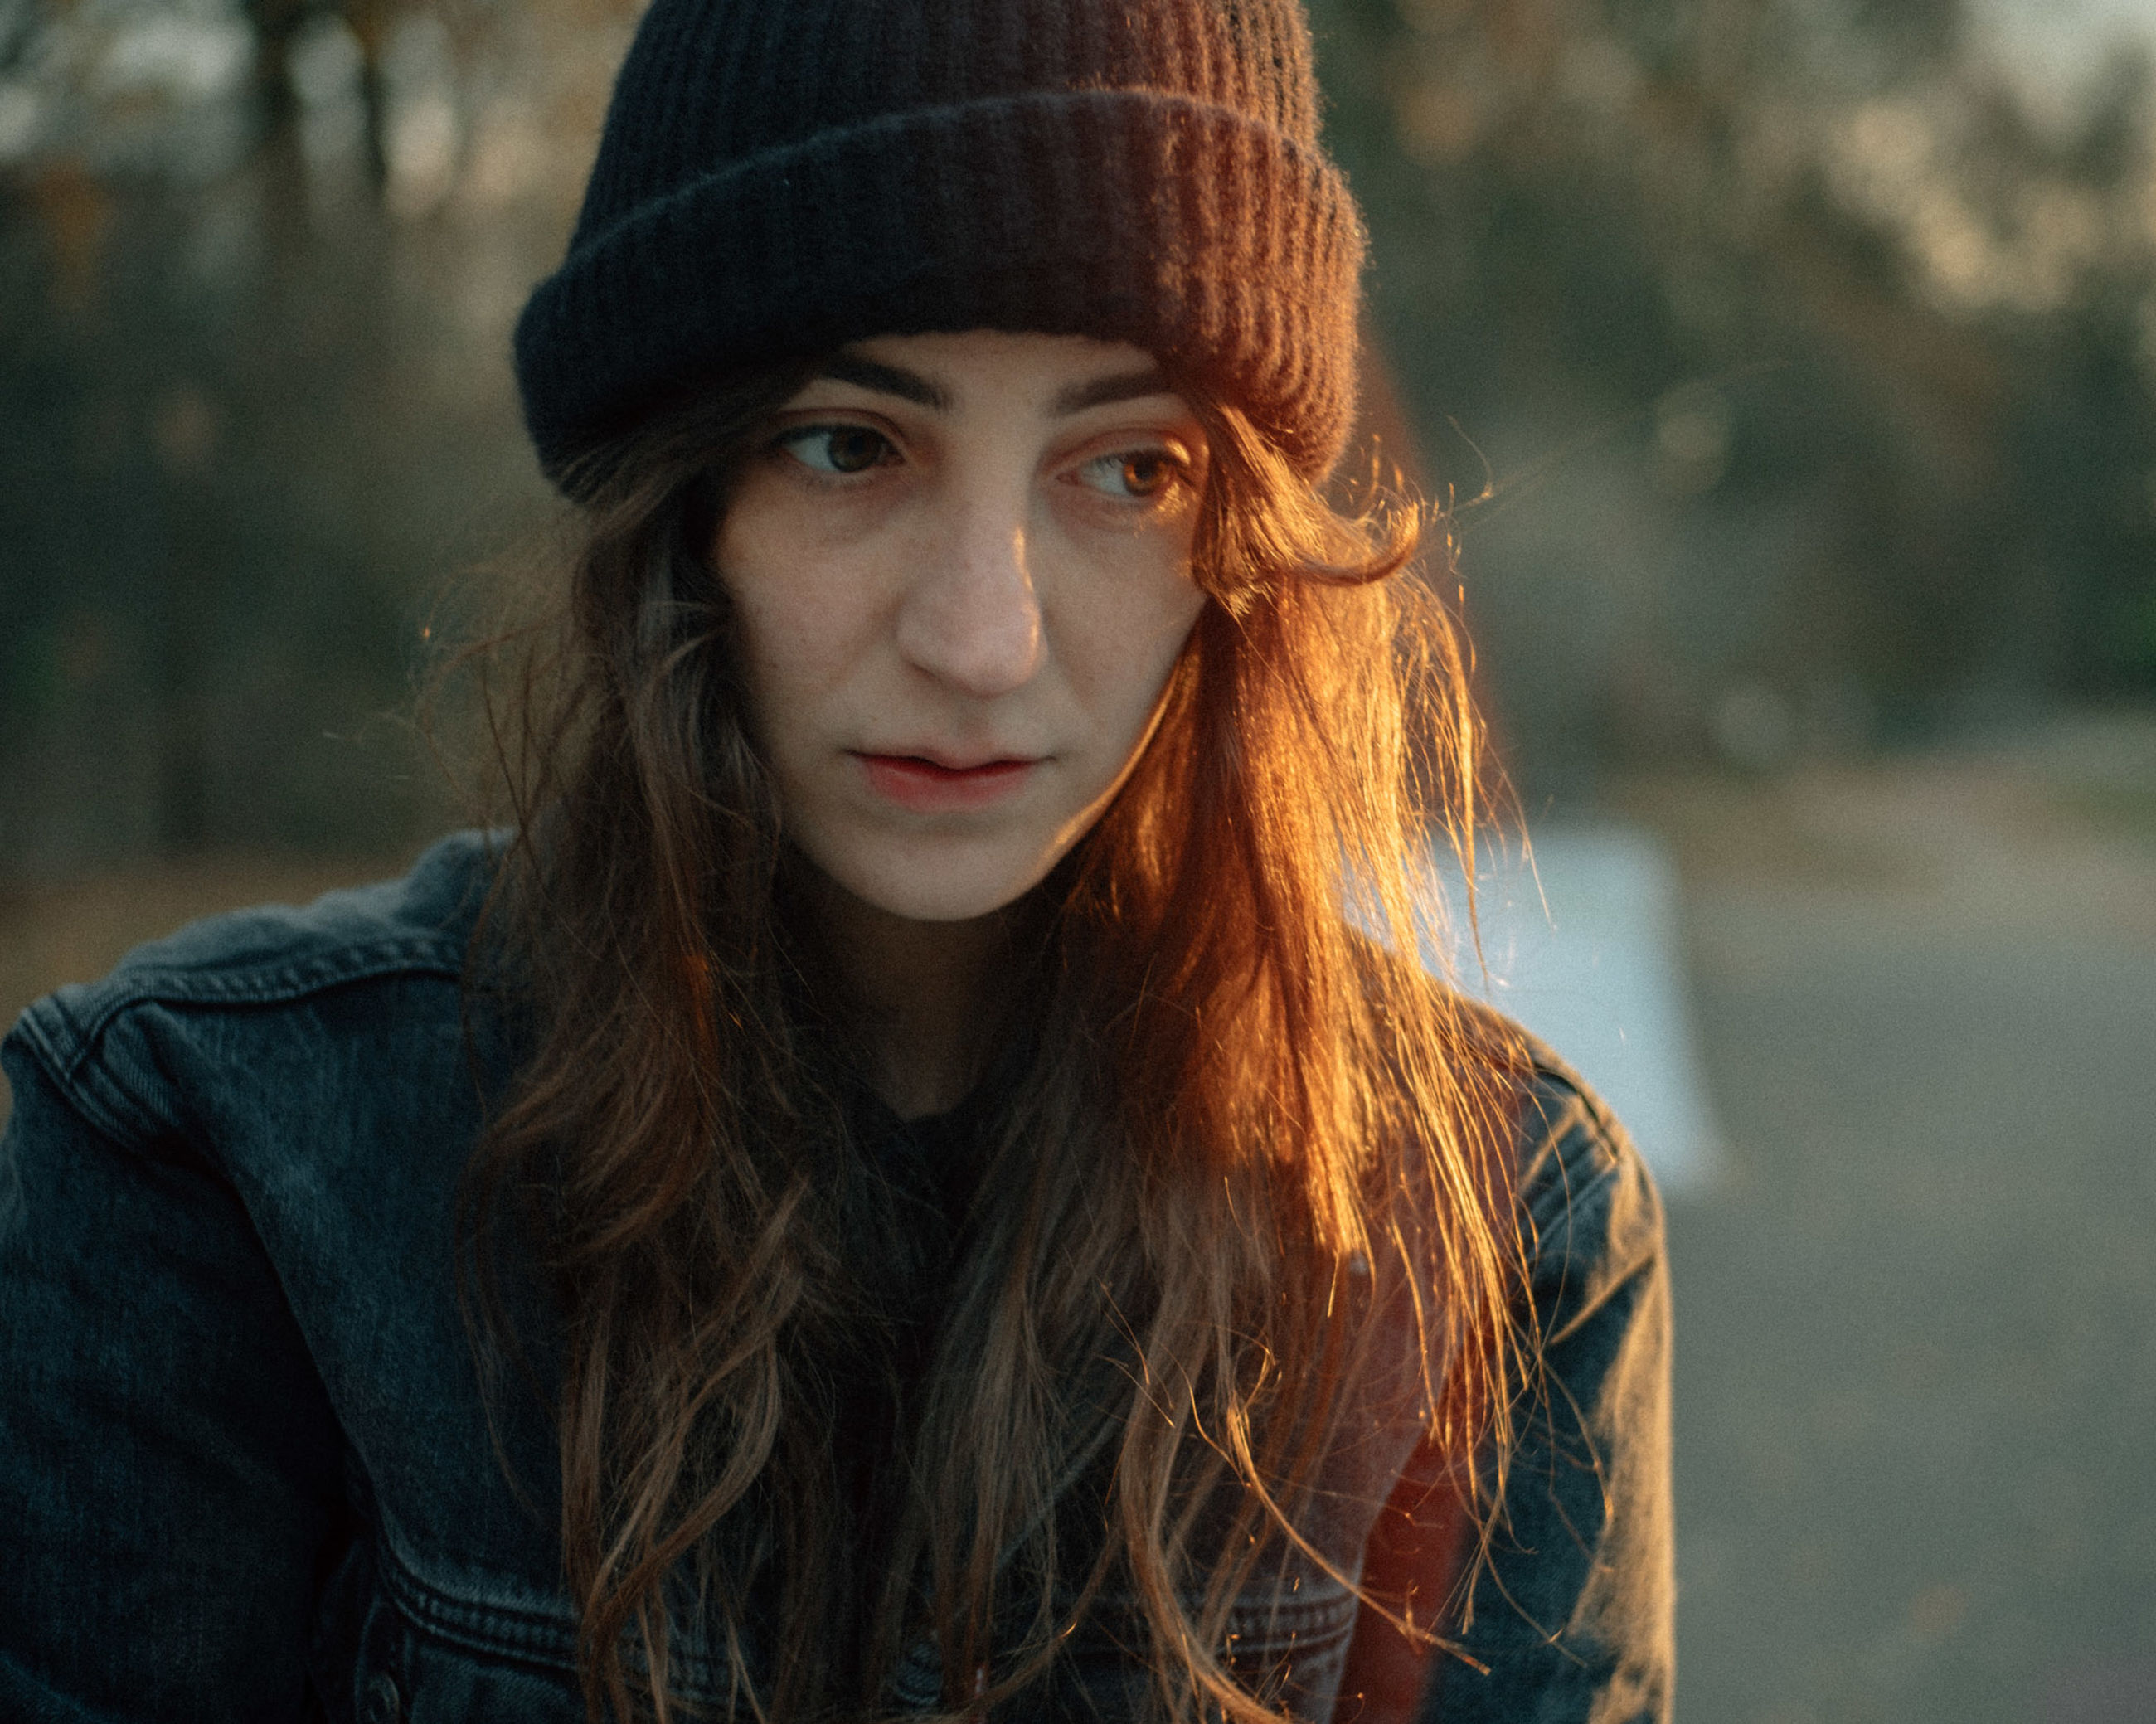 portrait, one person, looking at camera, hat, young adult, front view, real people, young women, focus on foreground, long hair, clothing, headshot, lifestyles, hairstyle, hair, beauty, beautiful woman, leisure activity, knit hat, warm clothing, outdoors, contemplation